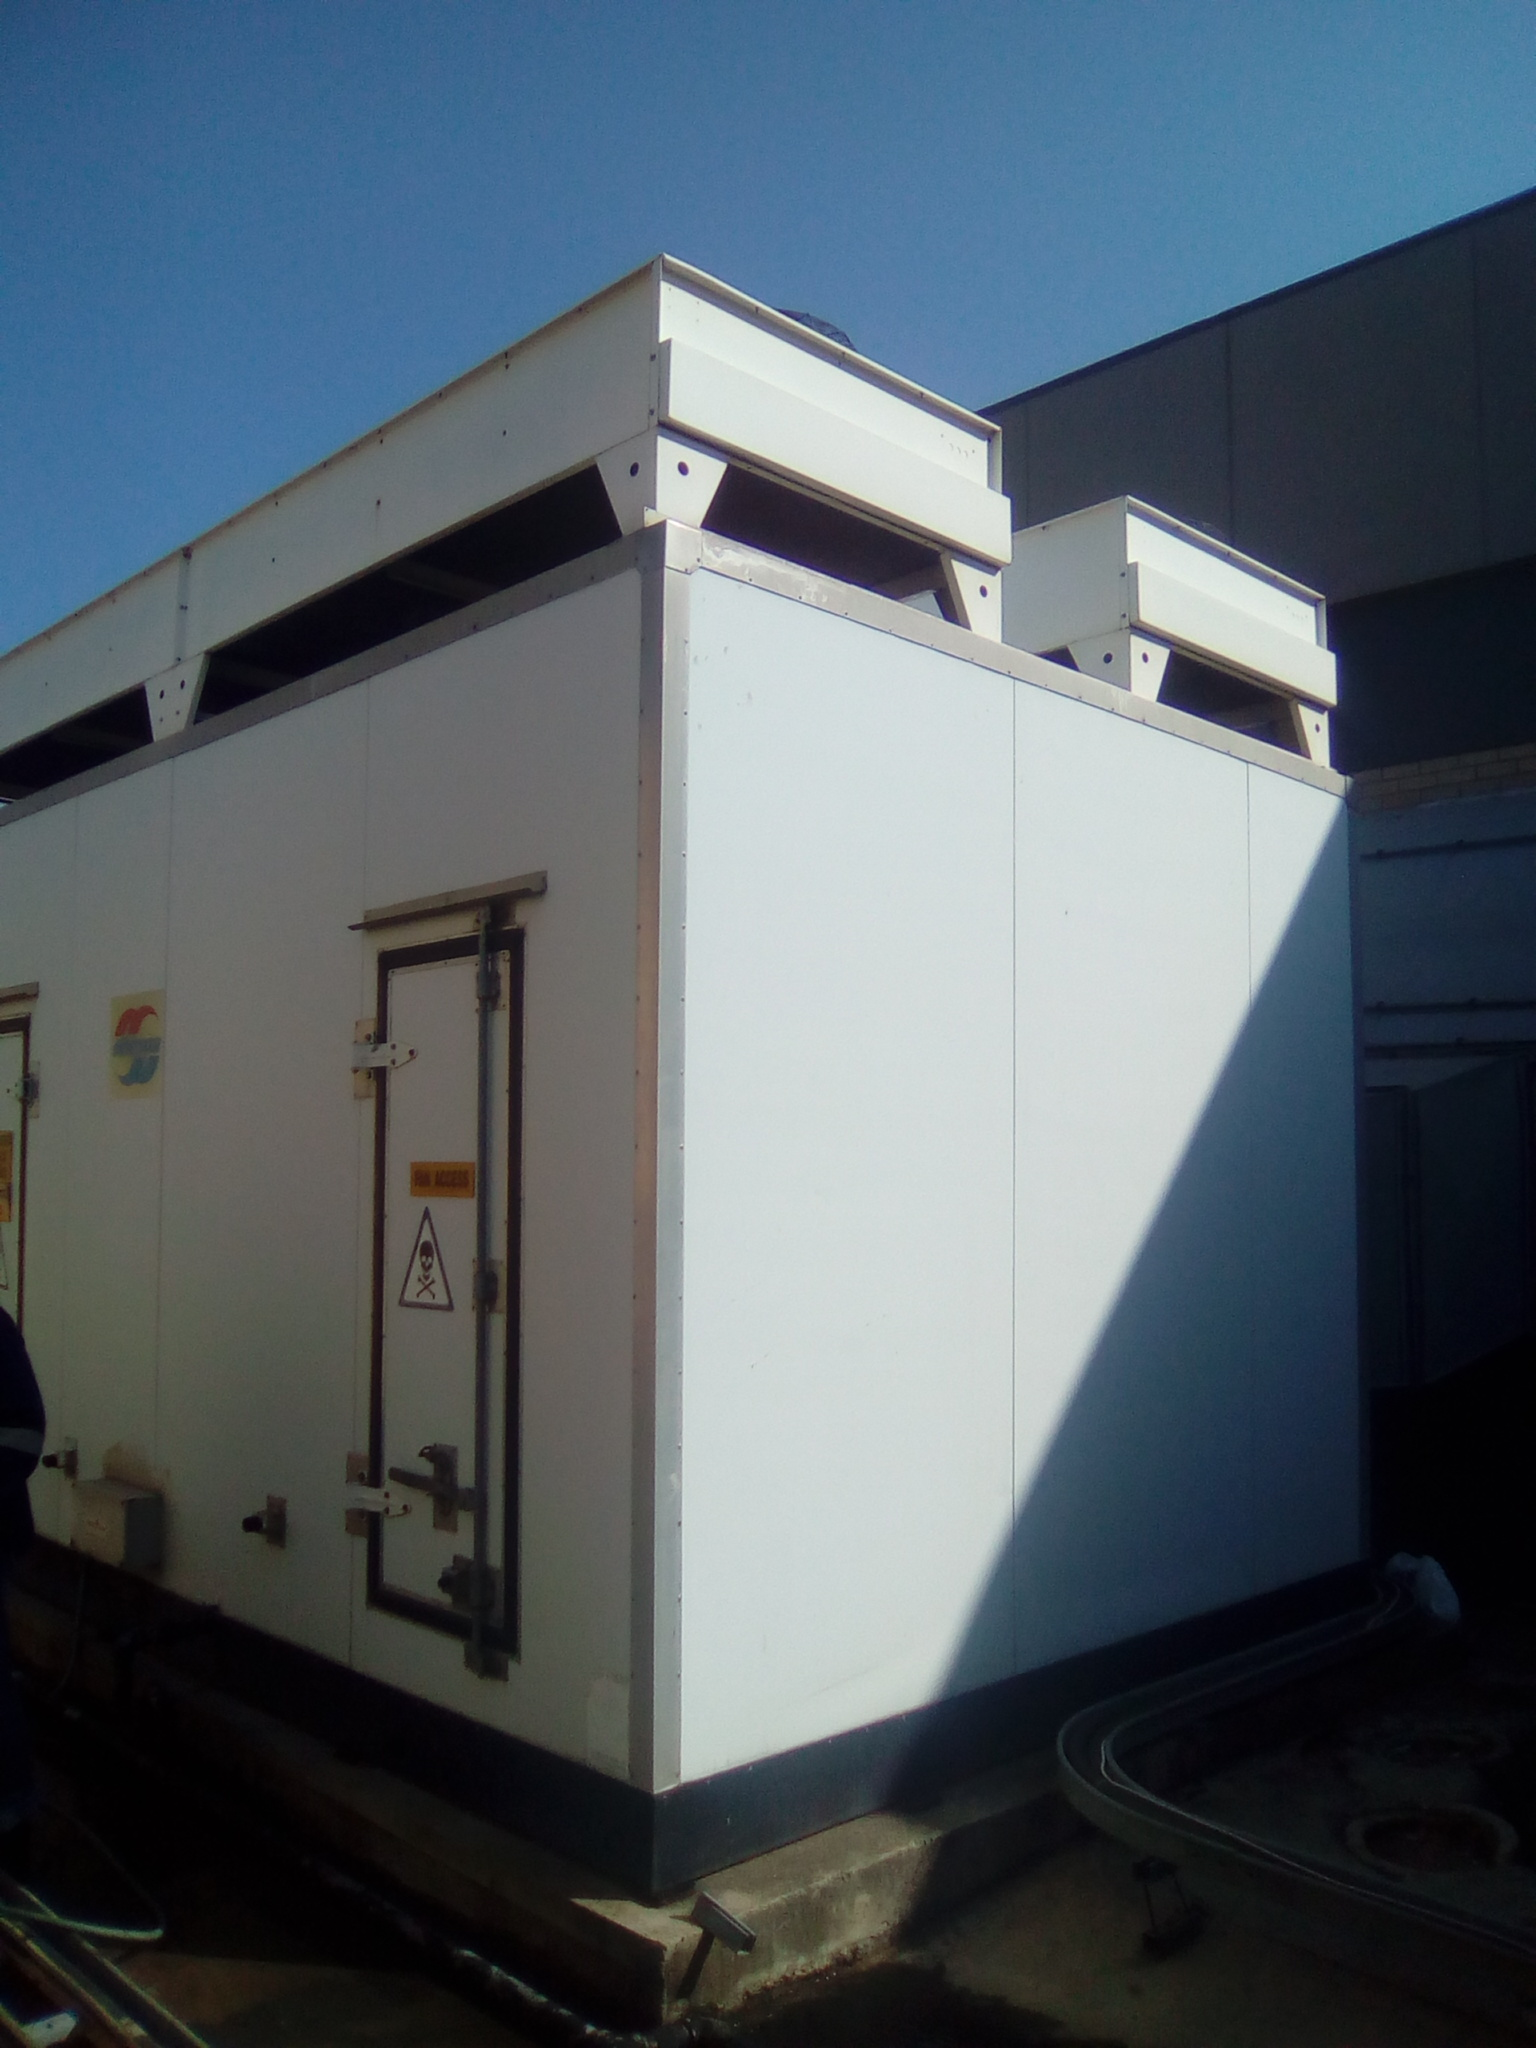 COLD ROOMS AND FREEZER ROOMS MAINTANANCE